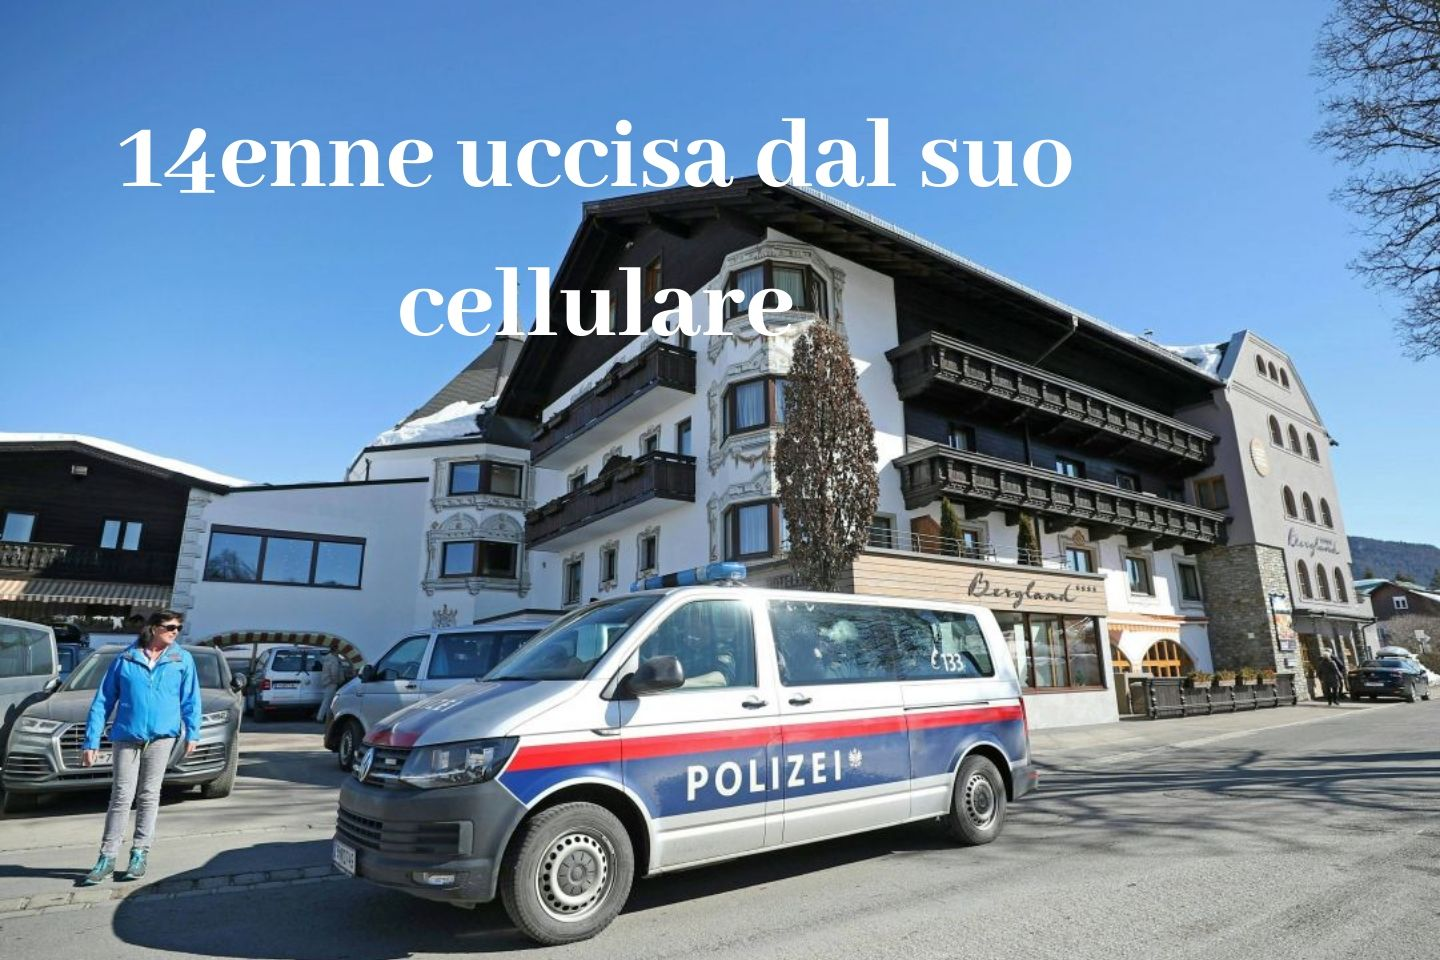 14enne uccisa dal suo cellulare